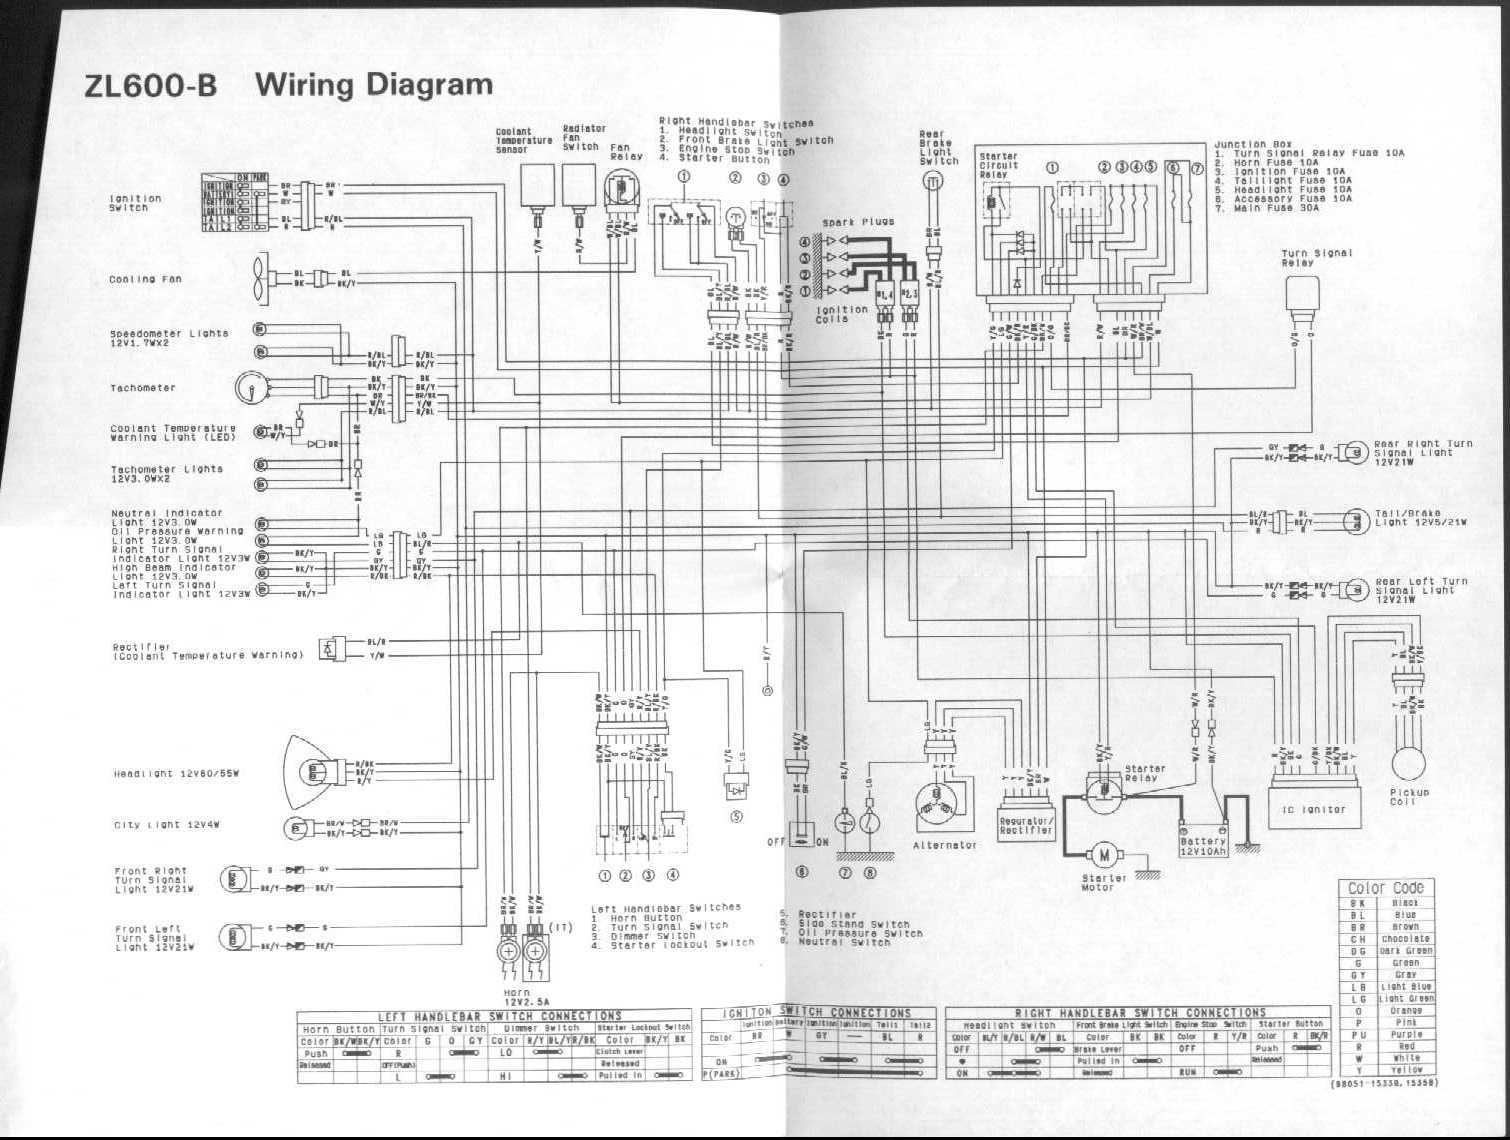 malaguti wiring diagrams ewd motorcycle ducting damper kenwood kdc, Wiring diagram